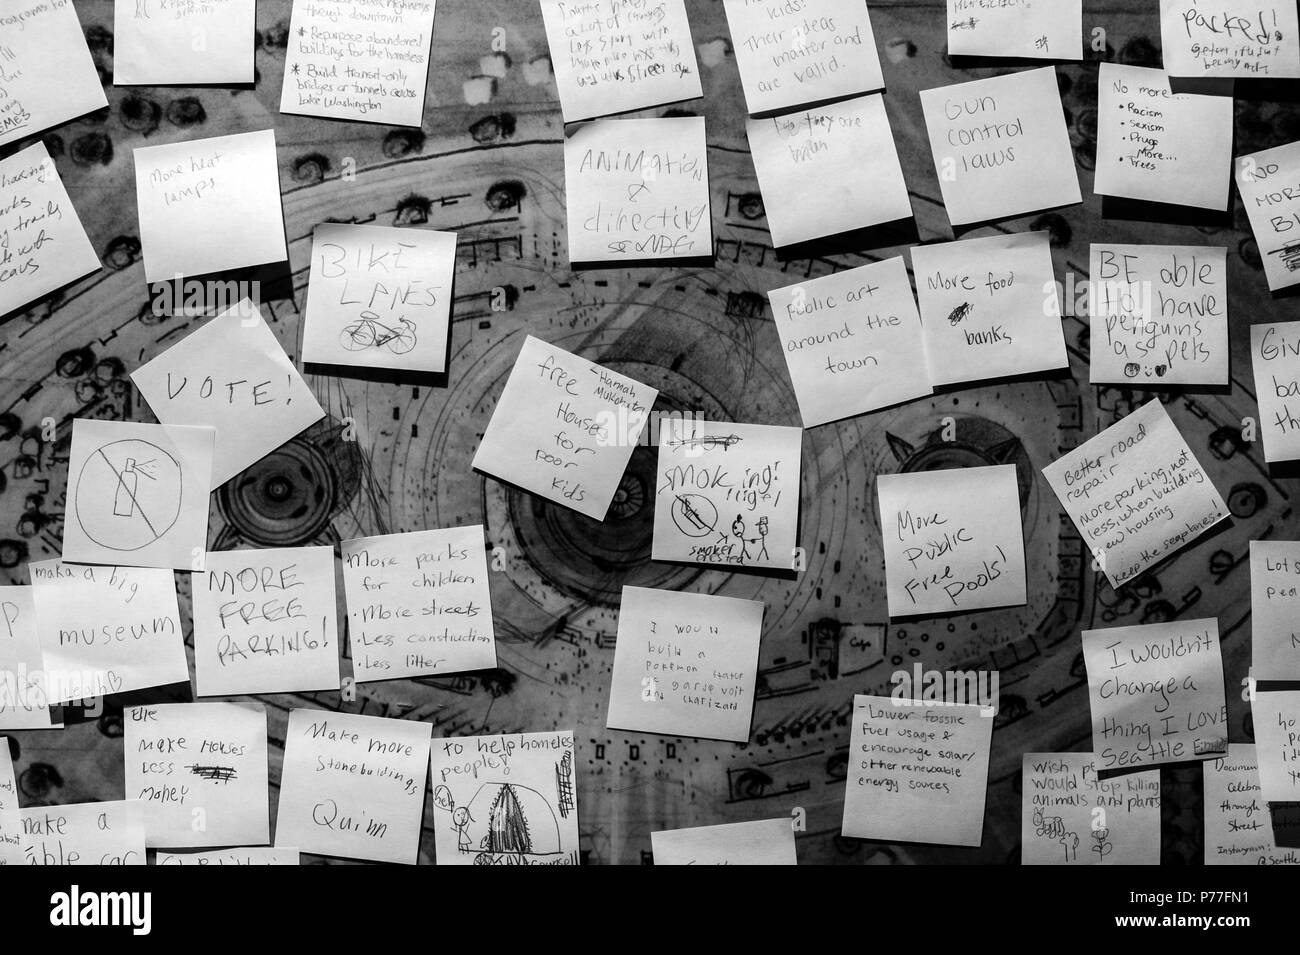 Post it notes on board with kids giving suggestions in their own words for the future - Stock Image